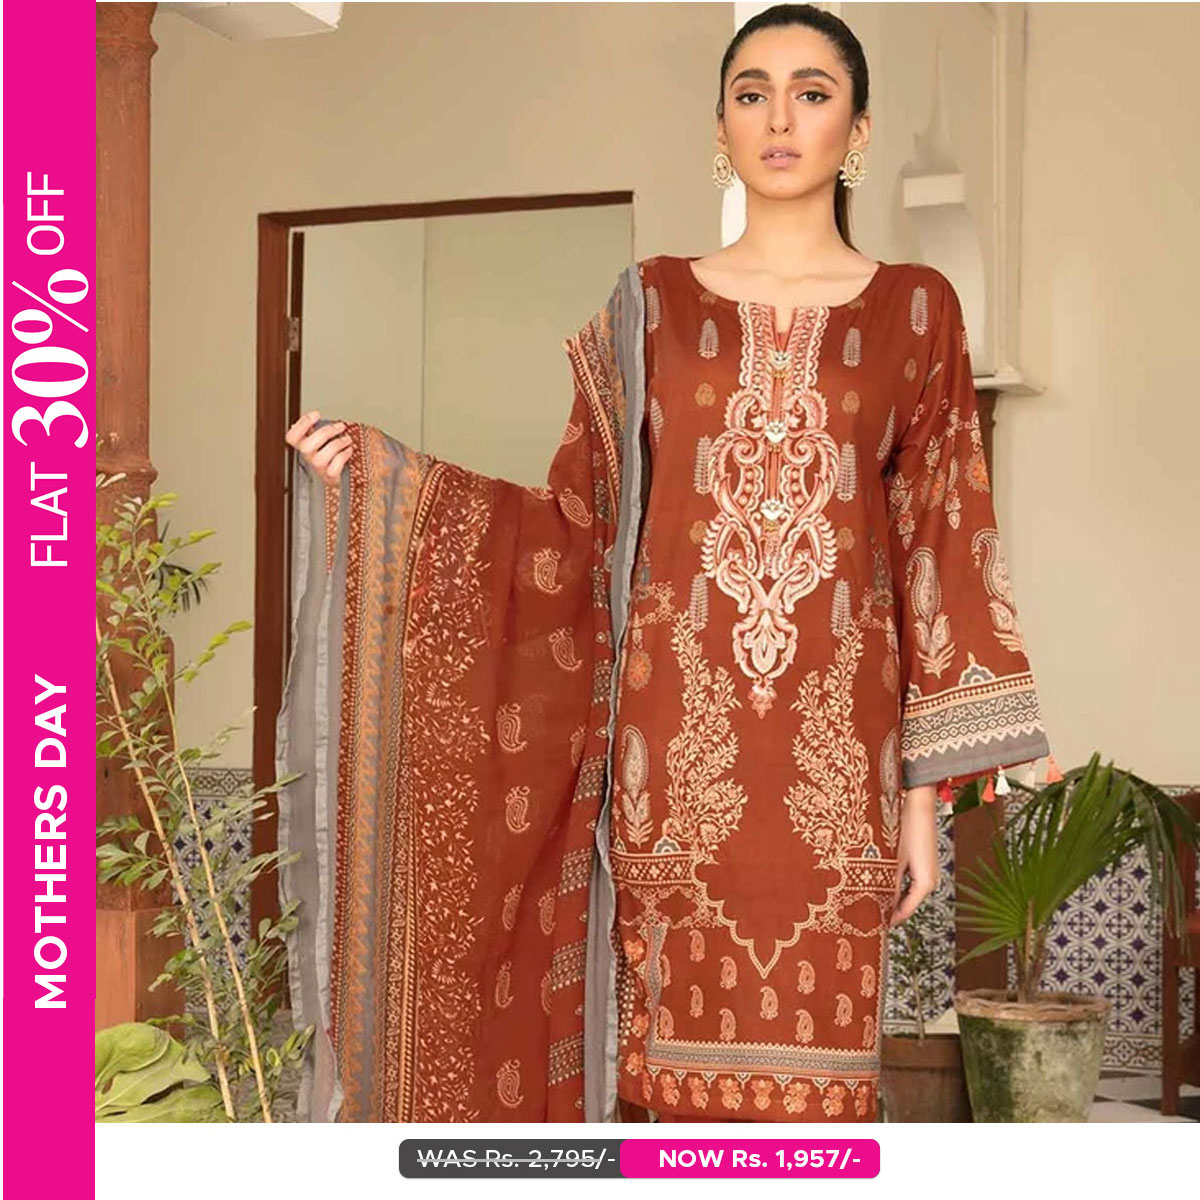 Warda Sale 2021 Flat 30% Off - Mother's Day Offer